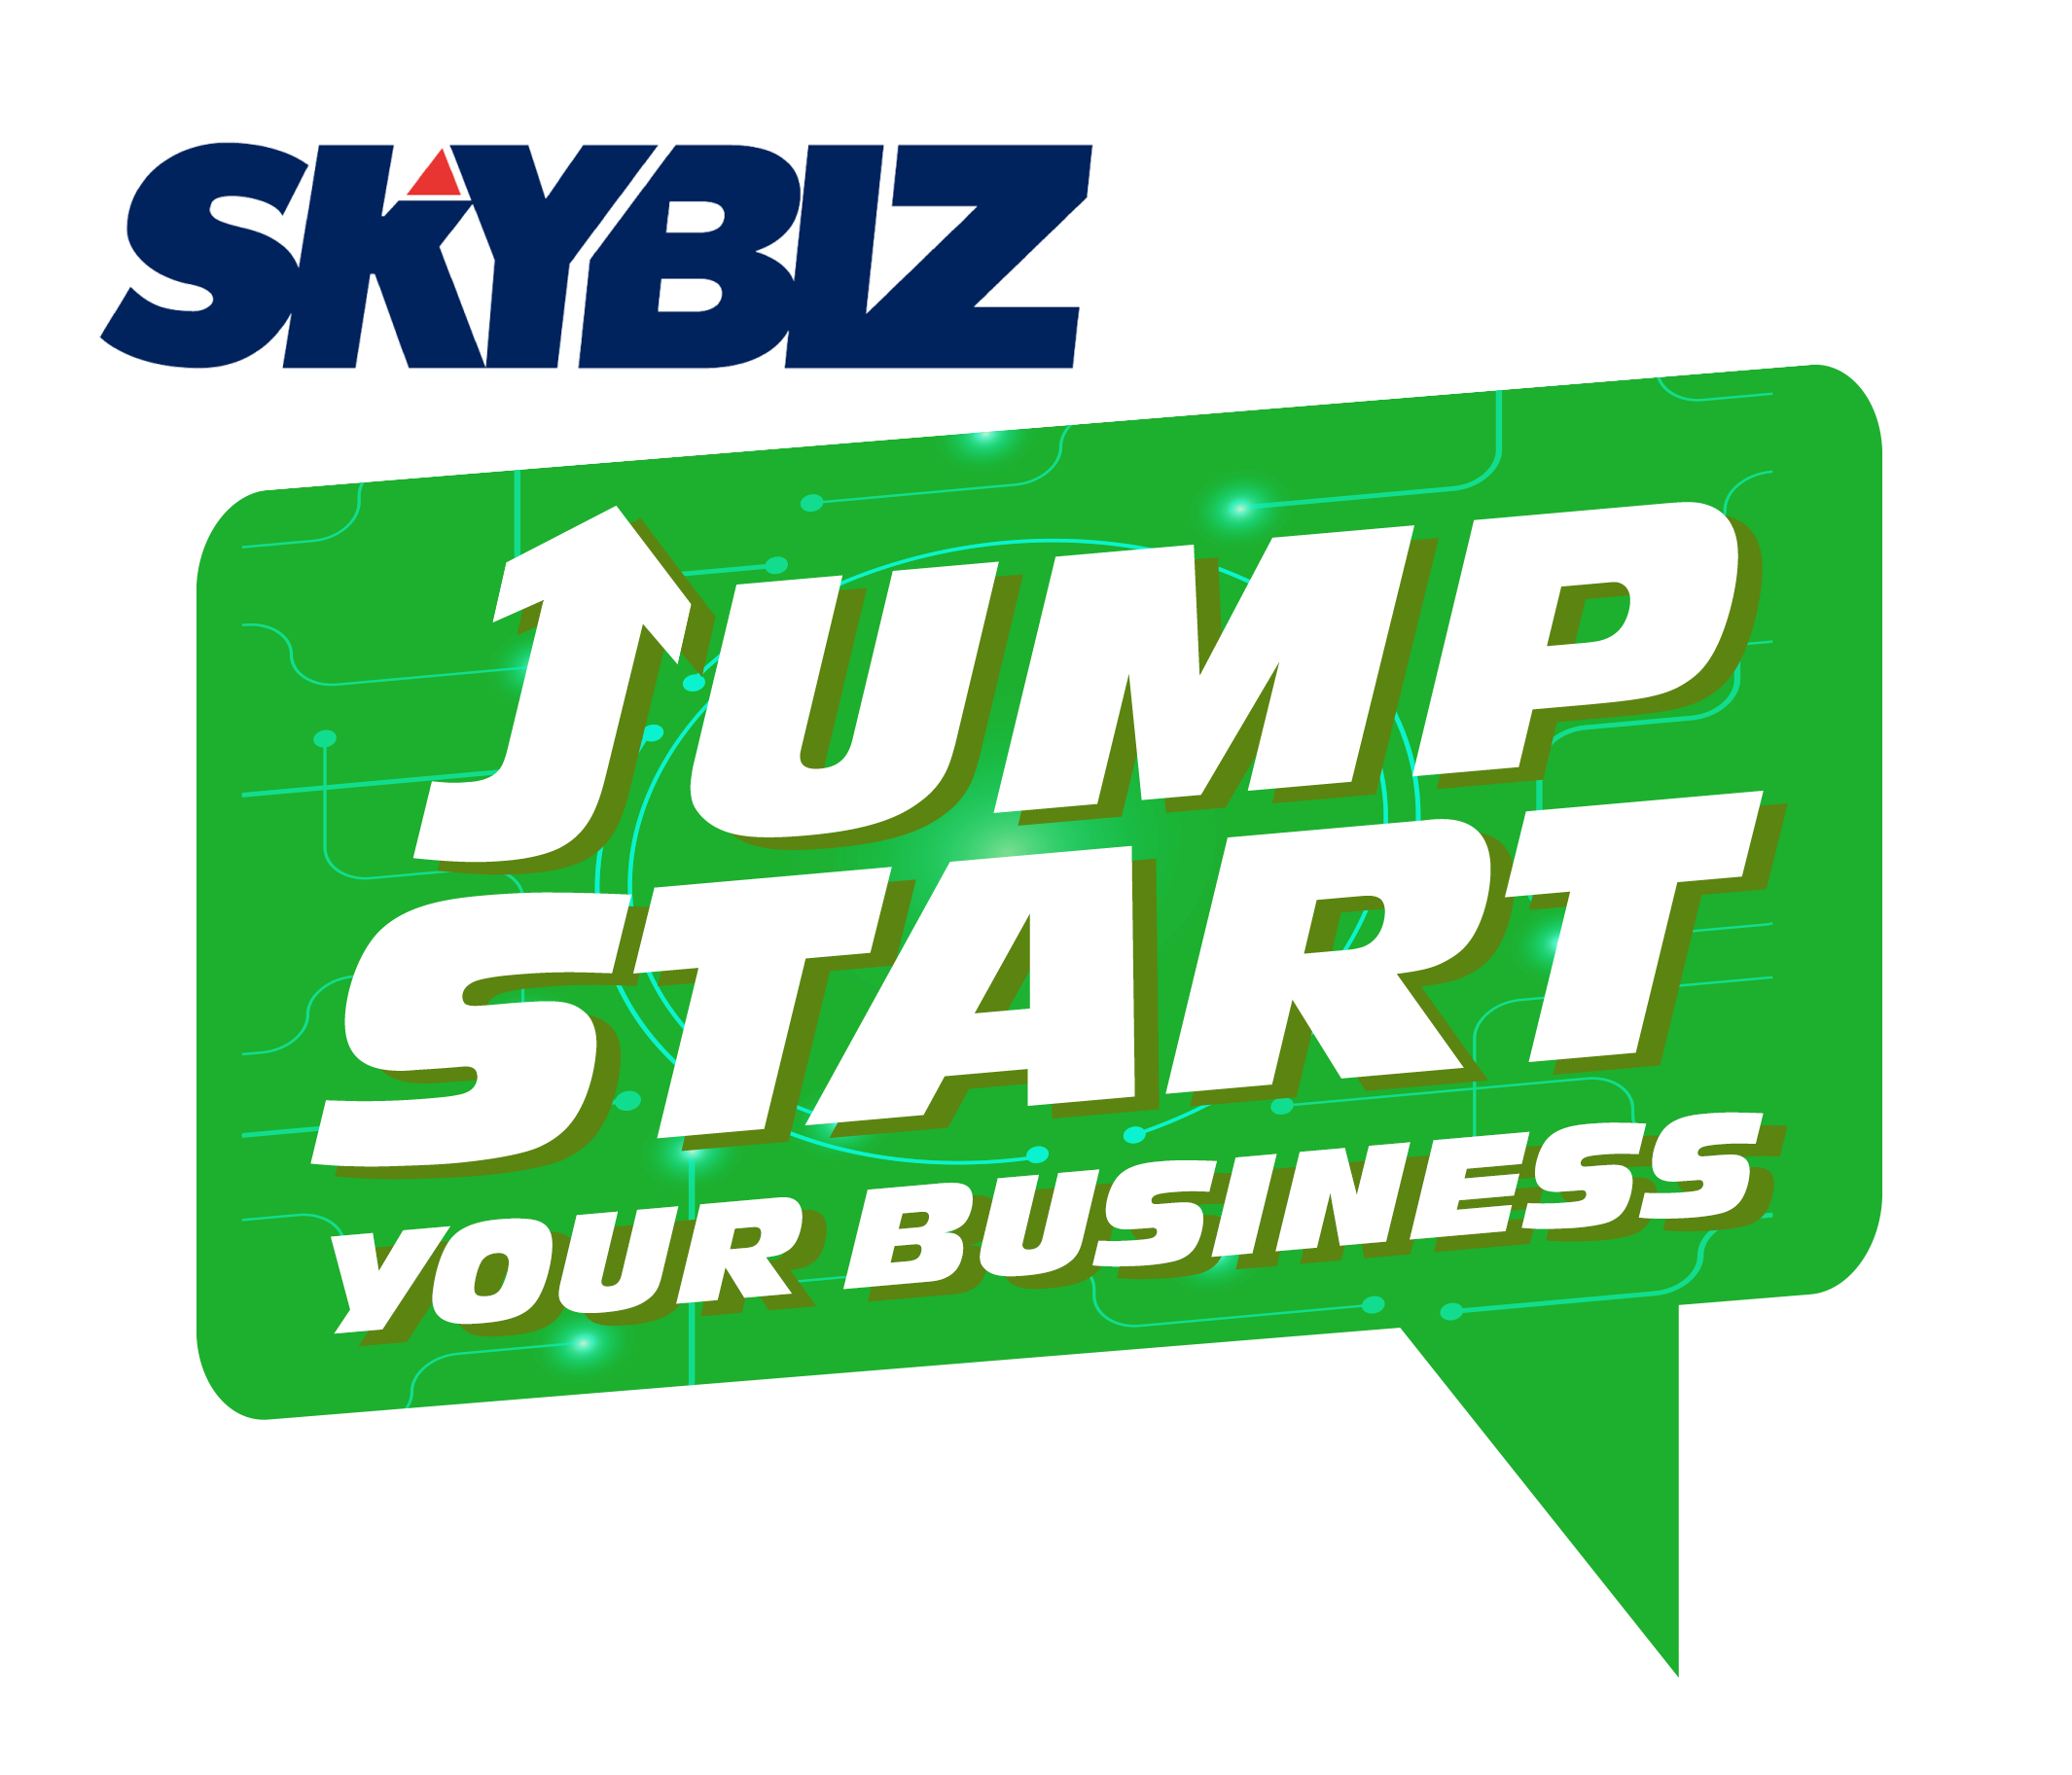 Sign up for a SKYBIZ Fiber plan, jumpstart your business!